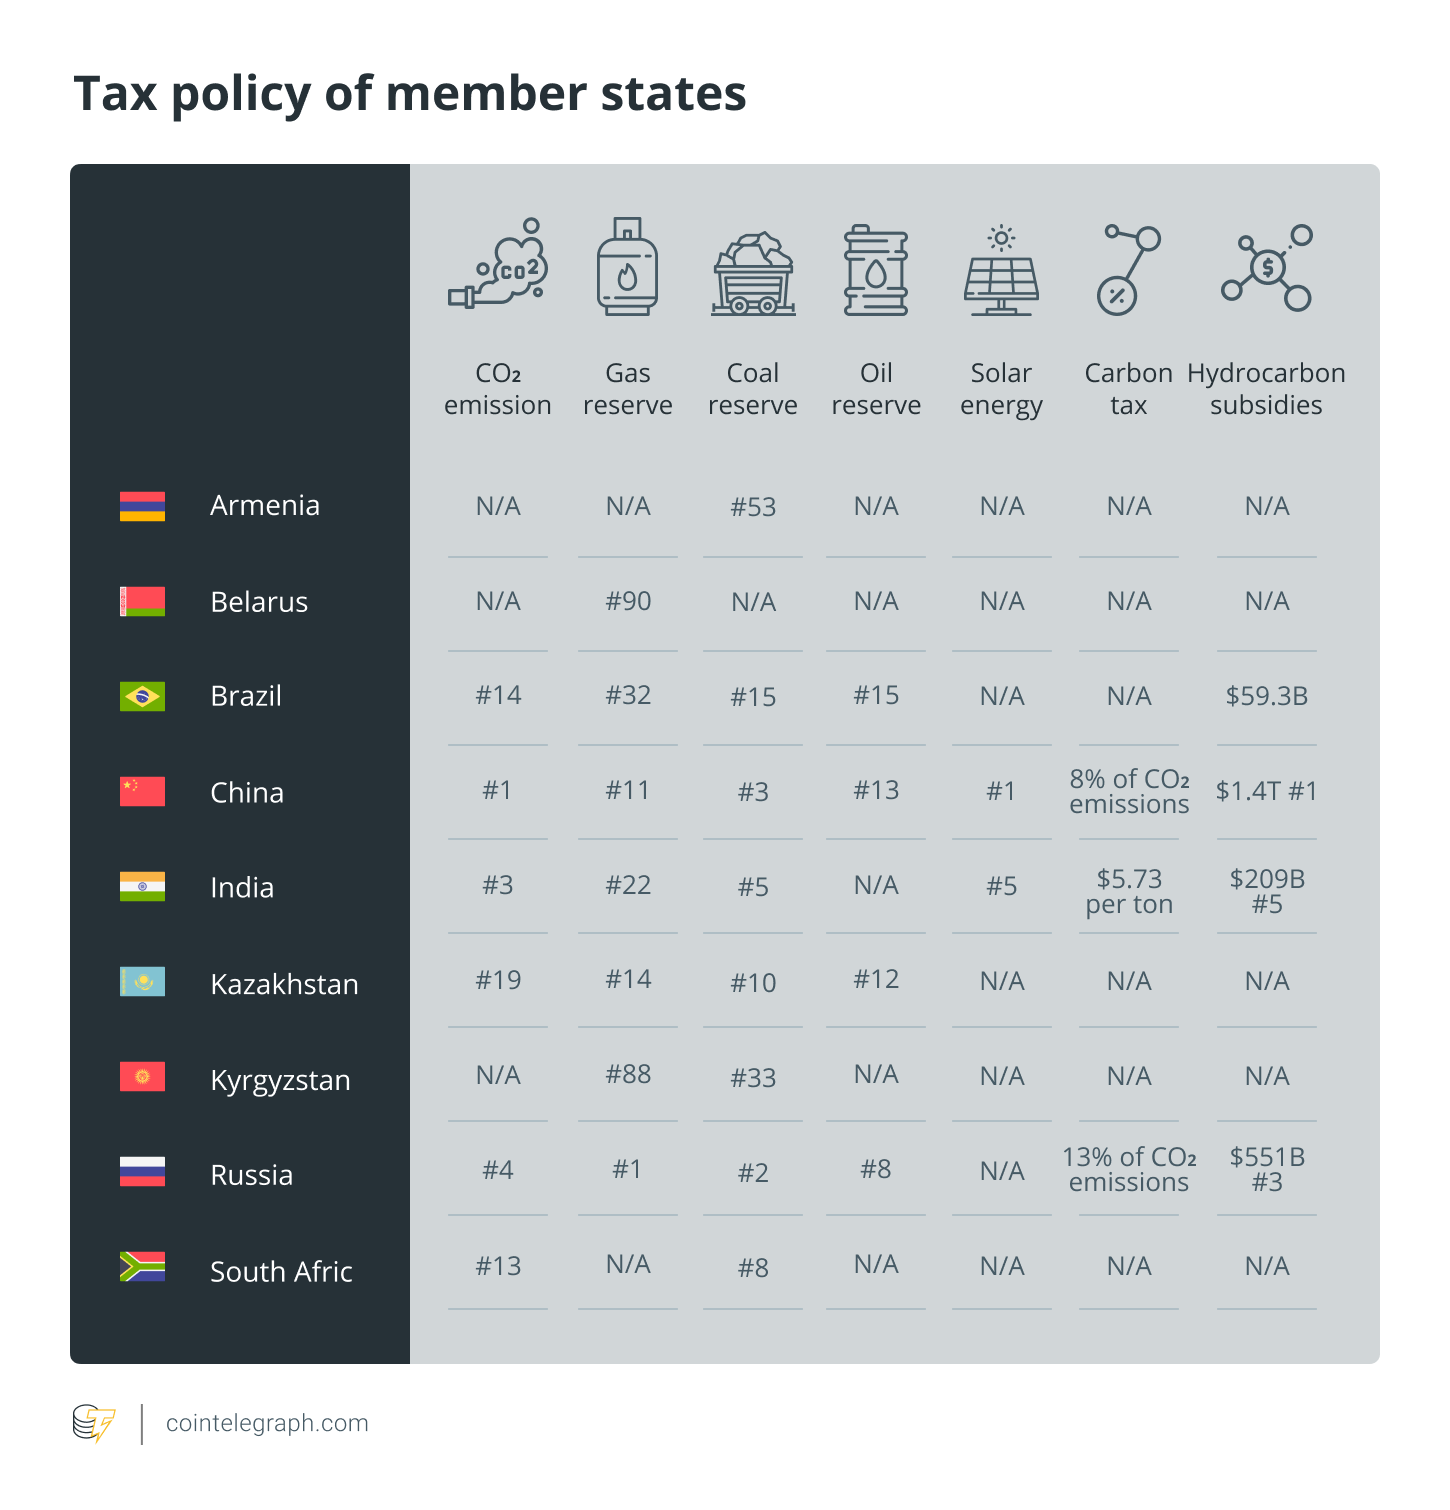 Tax policy of member states